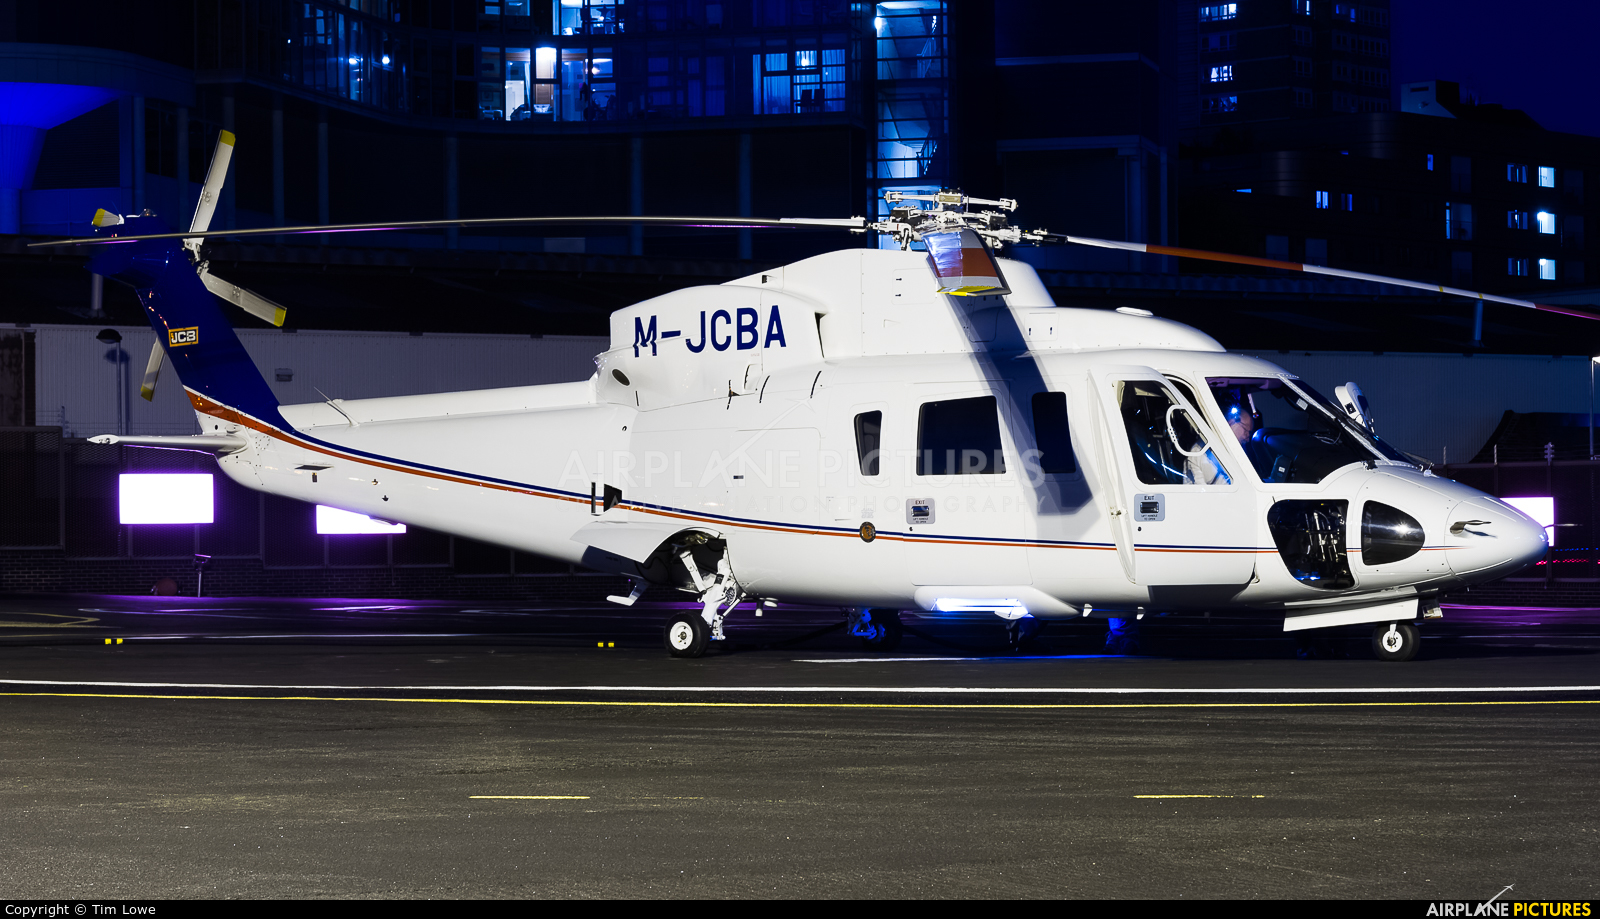 Private M-JCBA aircraft at London Heliport